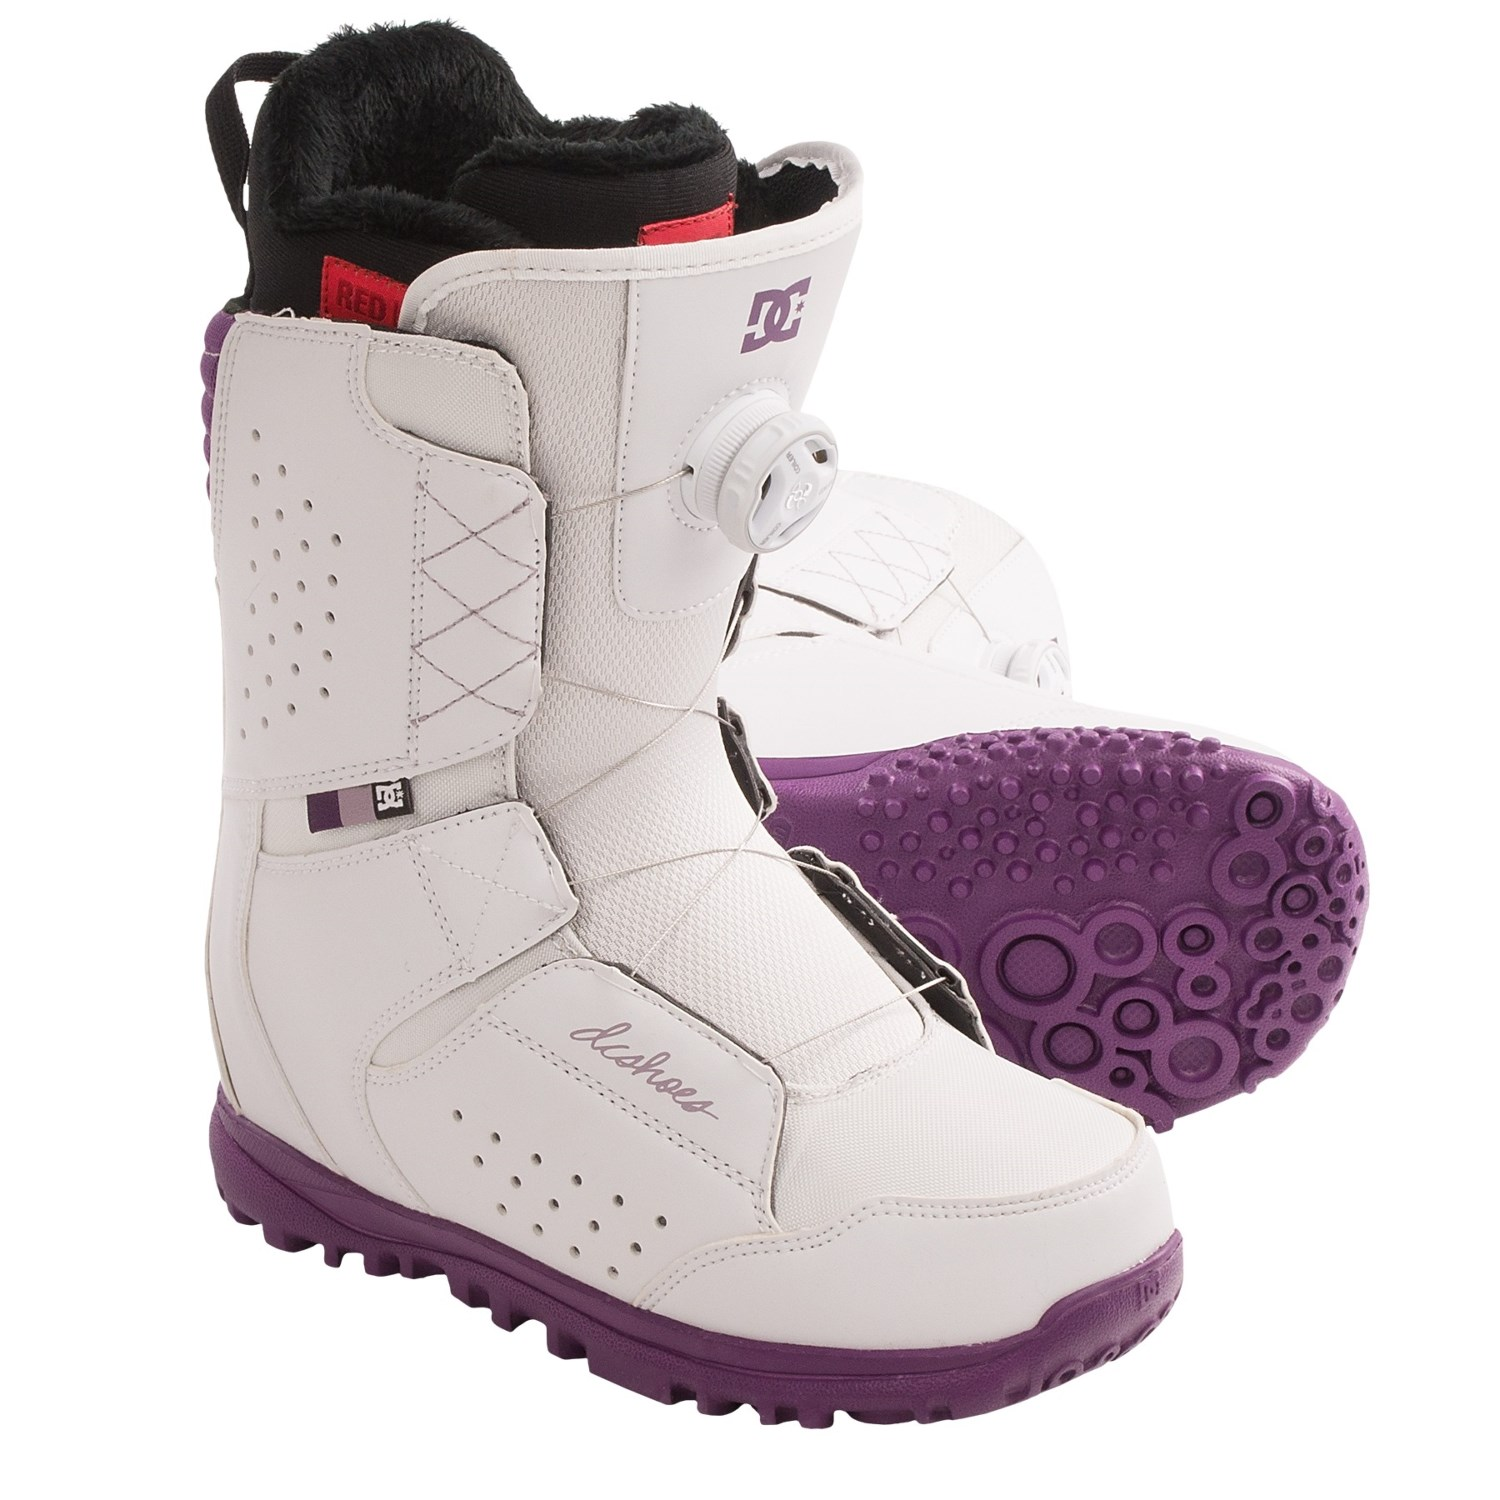 Amazing  Dc Shoes Snowboard Boots Snowboard Snowboard Boots Dc Shoes Shopping